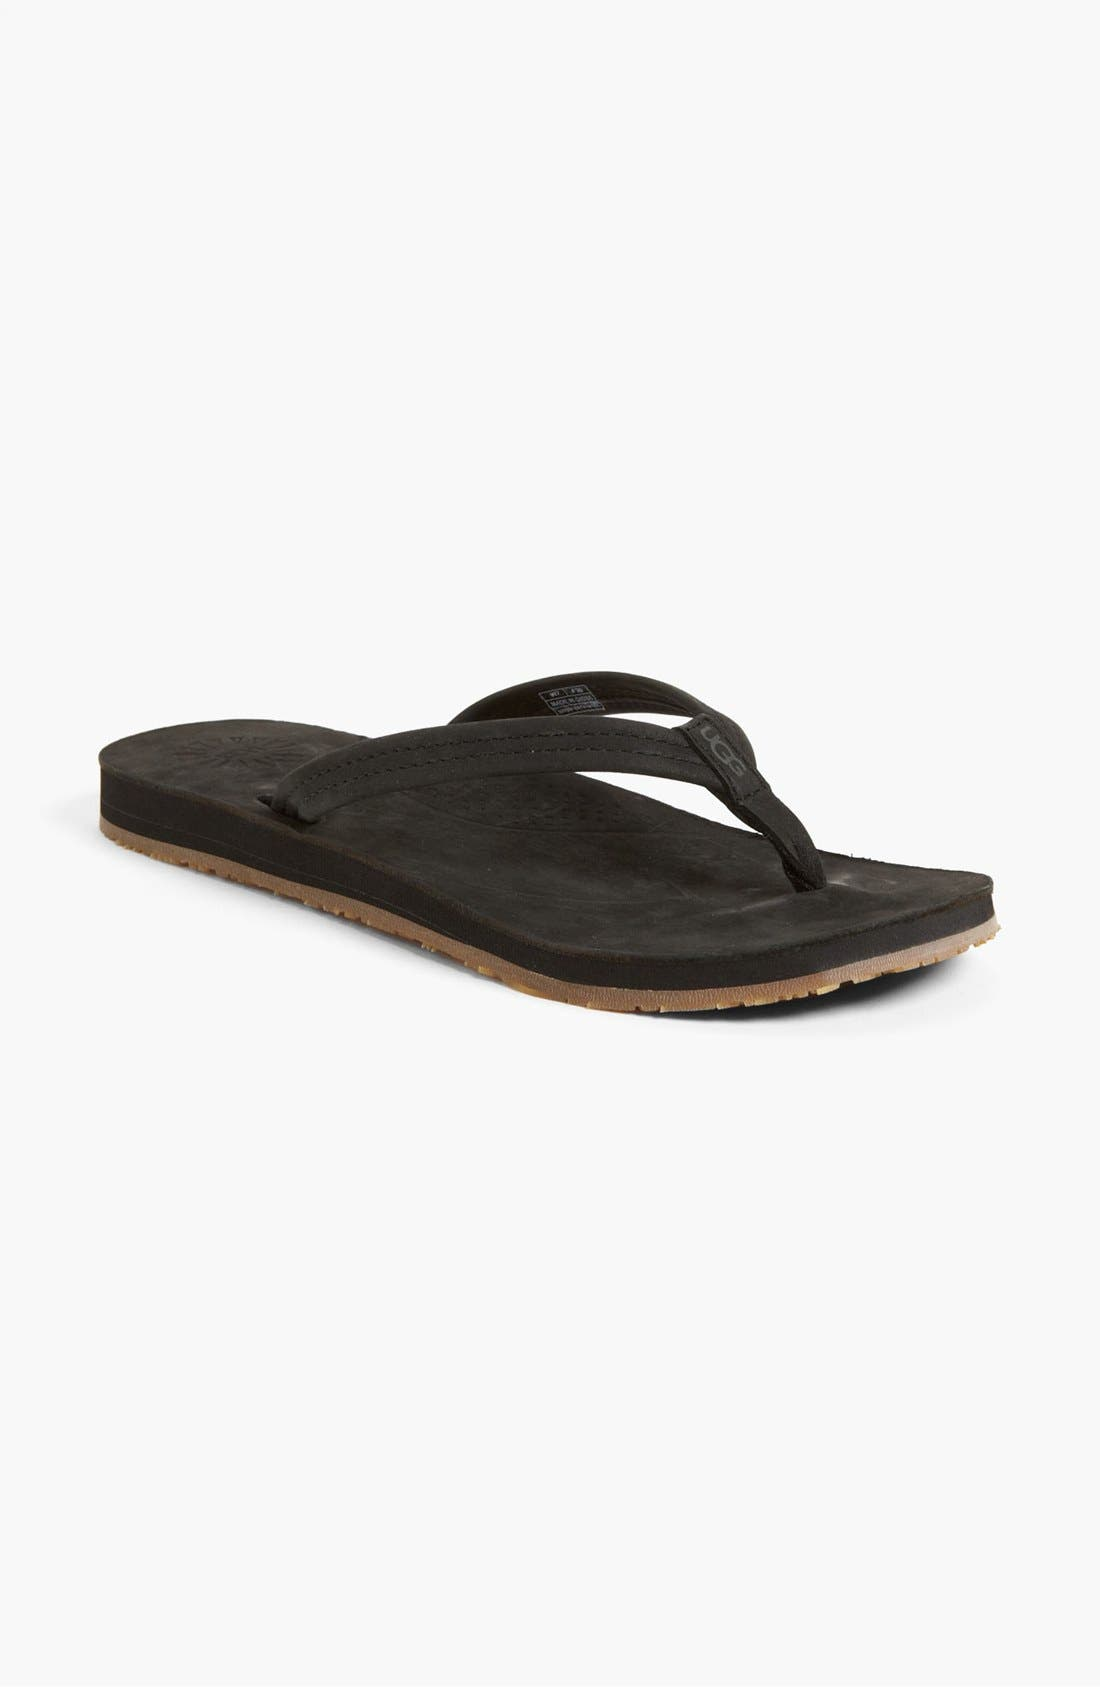 Alternate Image 1 Selected - UGG® 'Kayla' Thong Sandal (Women)